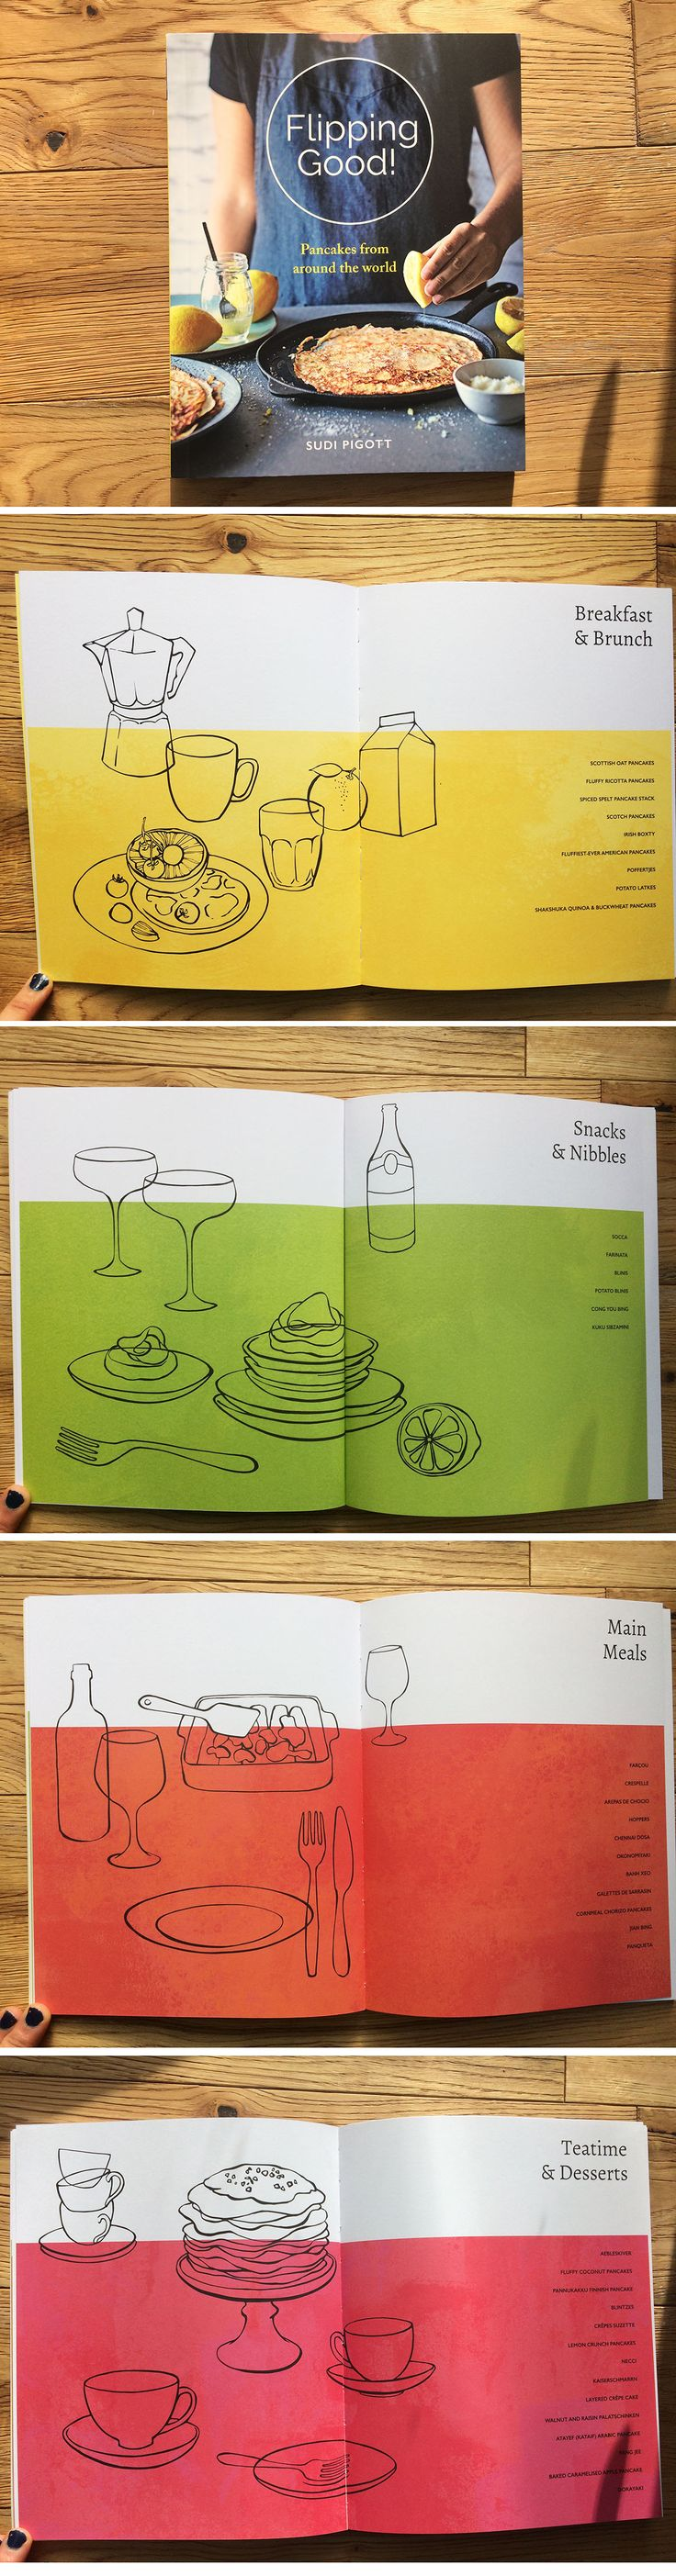 Chapter openers for Kyle Books cook book packed with pancake recipes from around the world